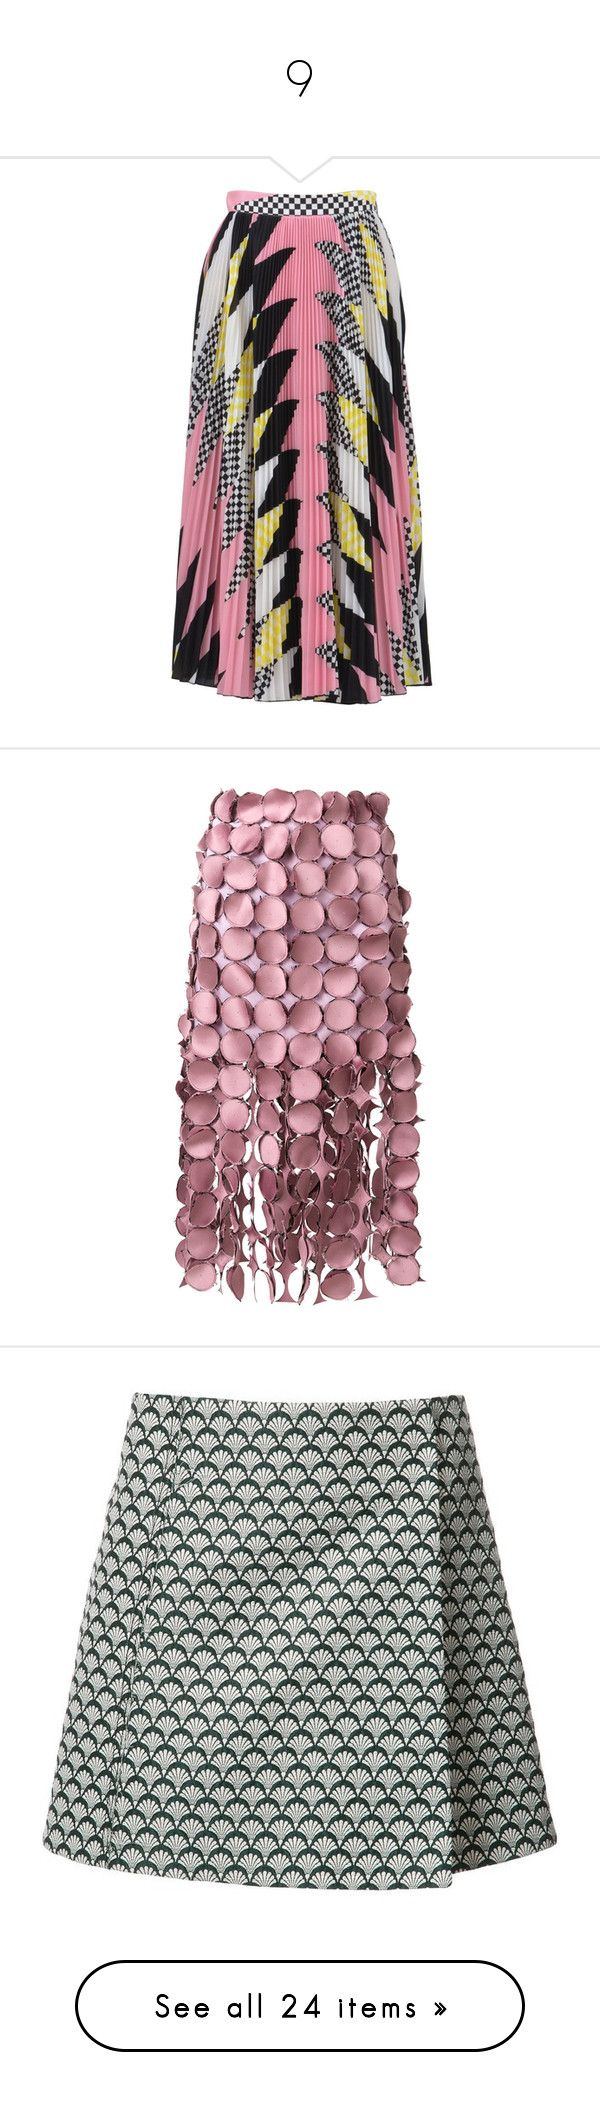 """""""9"""" by yee-yan ❤ liked on Polyvore featuring skirts, flared pleated skirt, msgm skirt, zipper skirt, pleated flare skirt, pleated mid length skirts, polka dot skirts, high waisted skirts, high-waist skirt and loewe"""